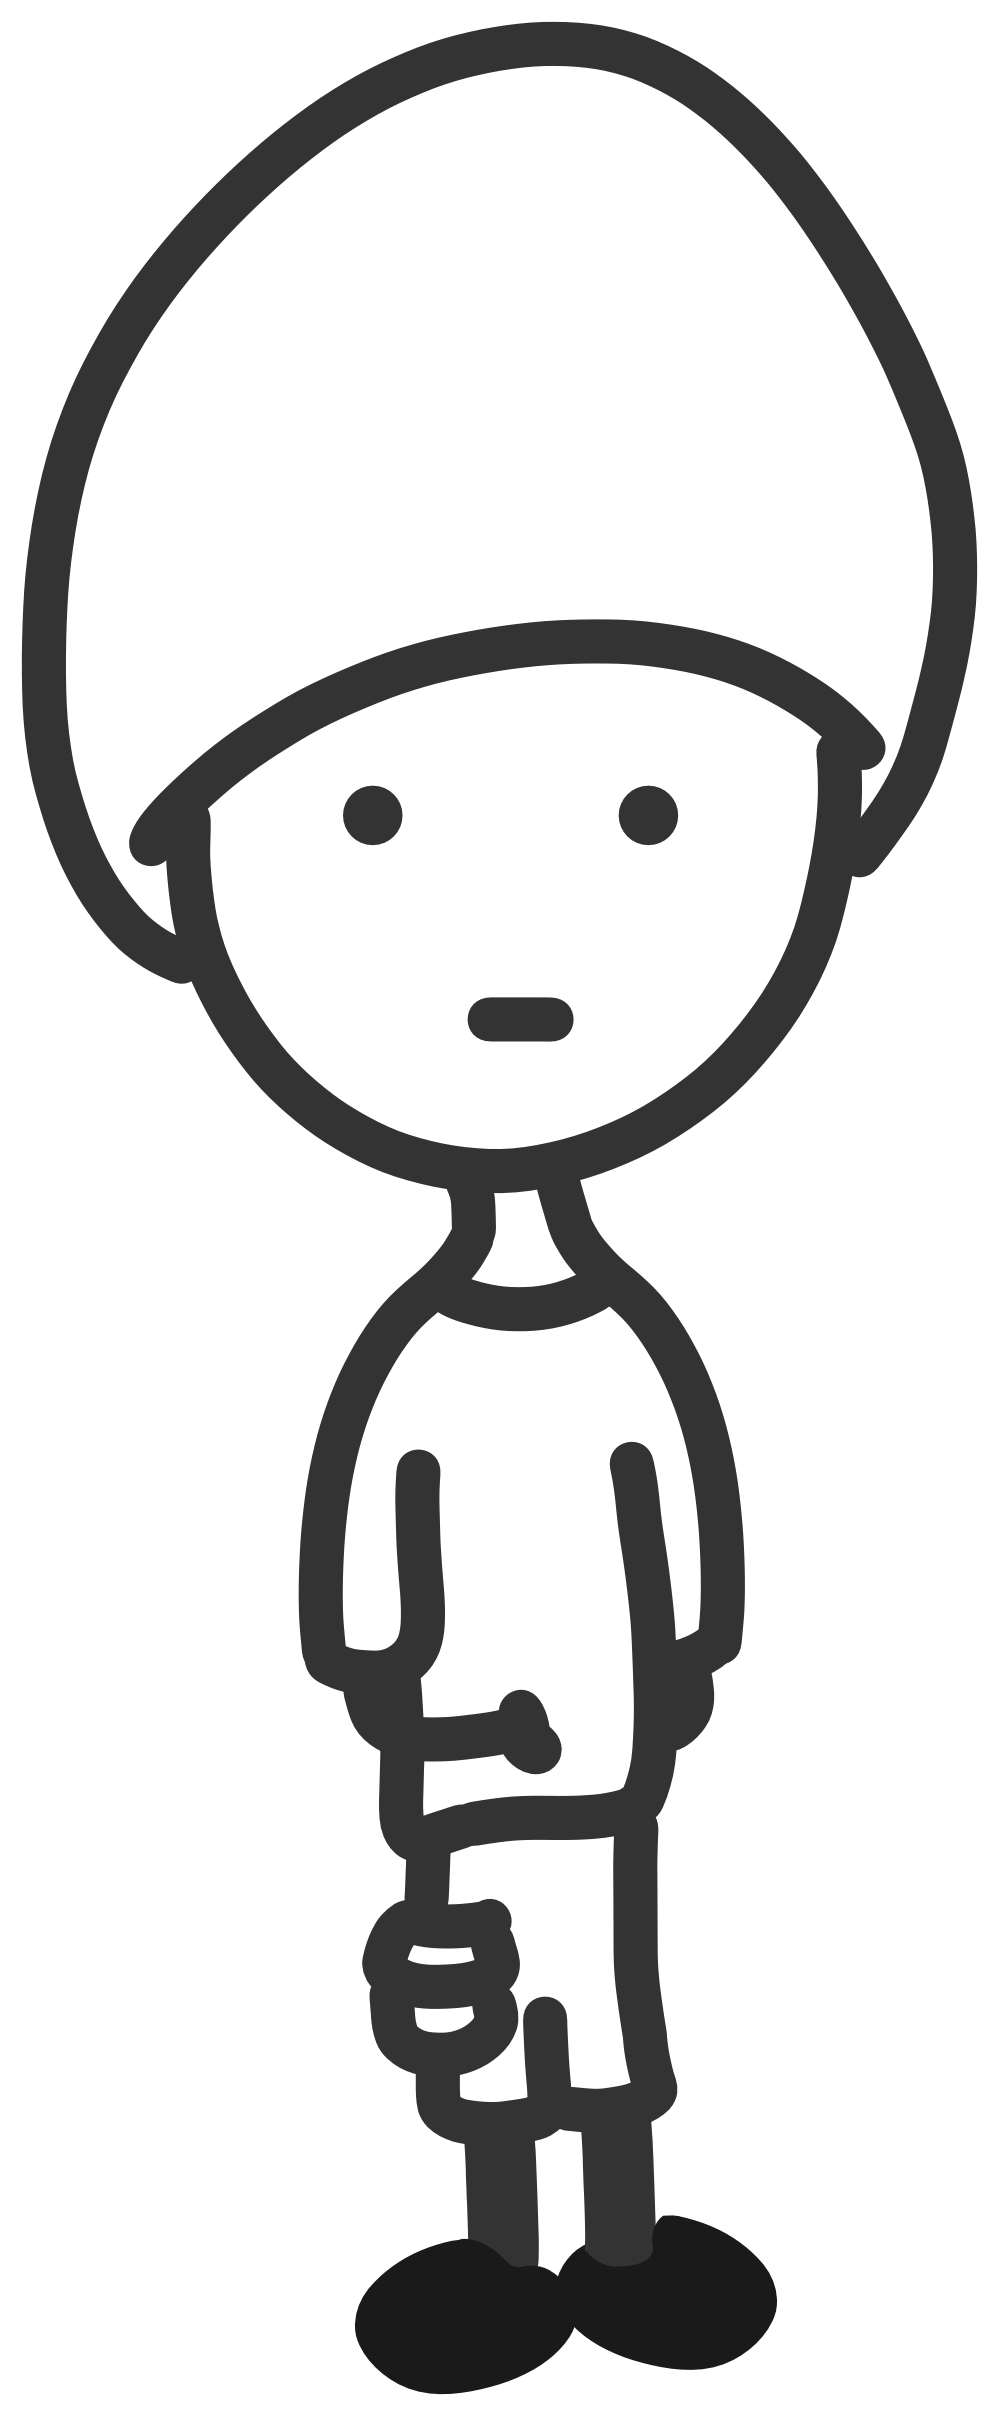 Free clipart boy drawing thoughts black and white clip art library download Boy clip art black and white | Clipart Panda - Free Clipart Images clip art library download